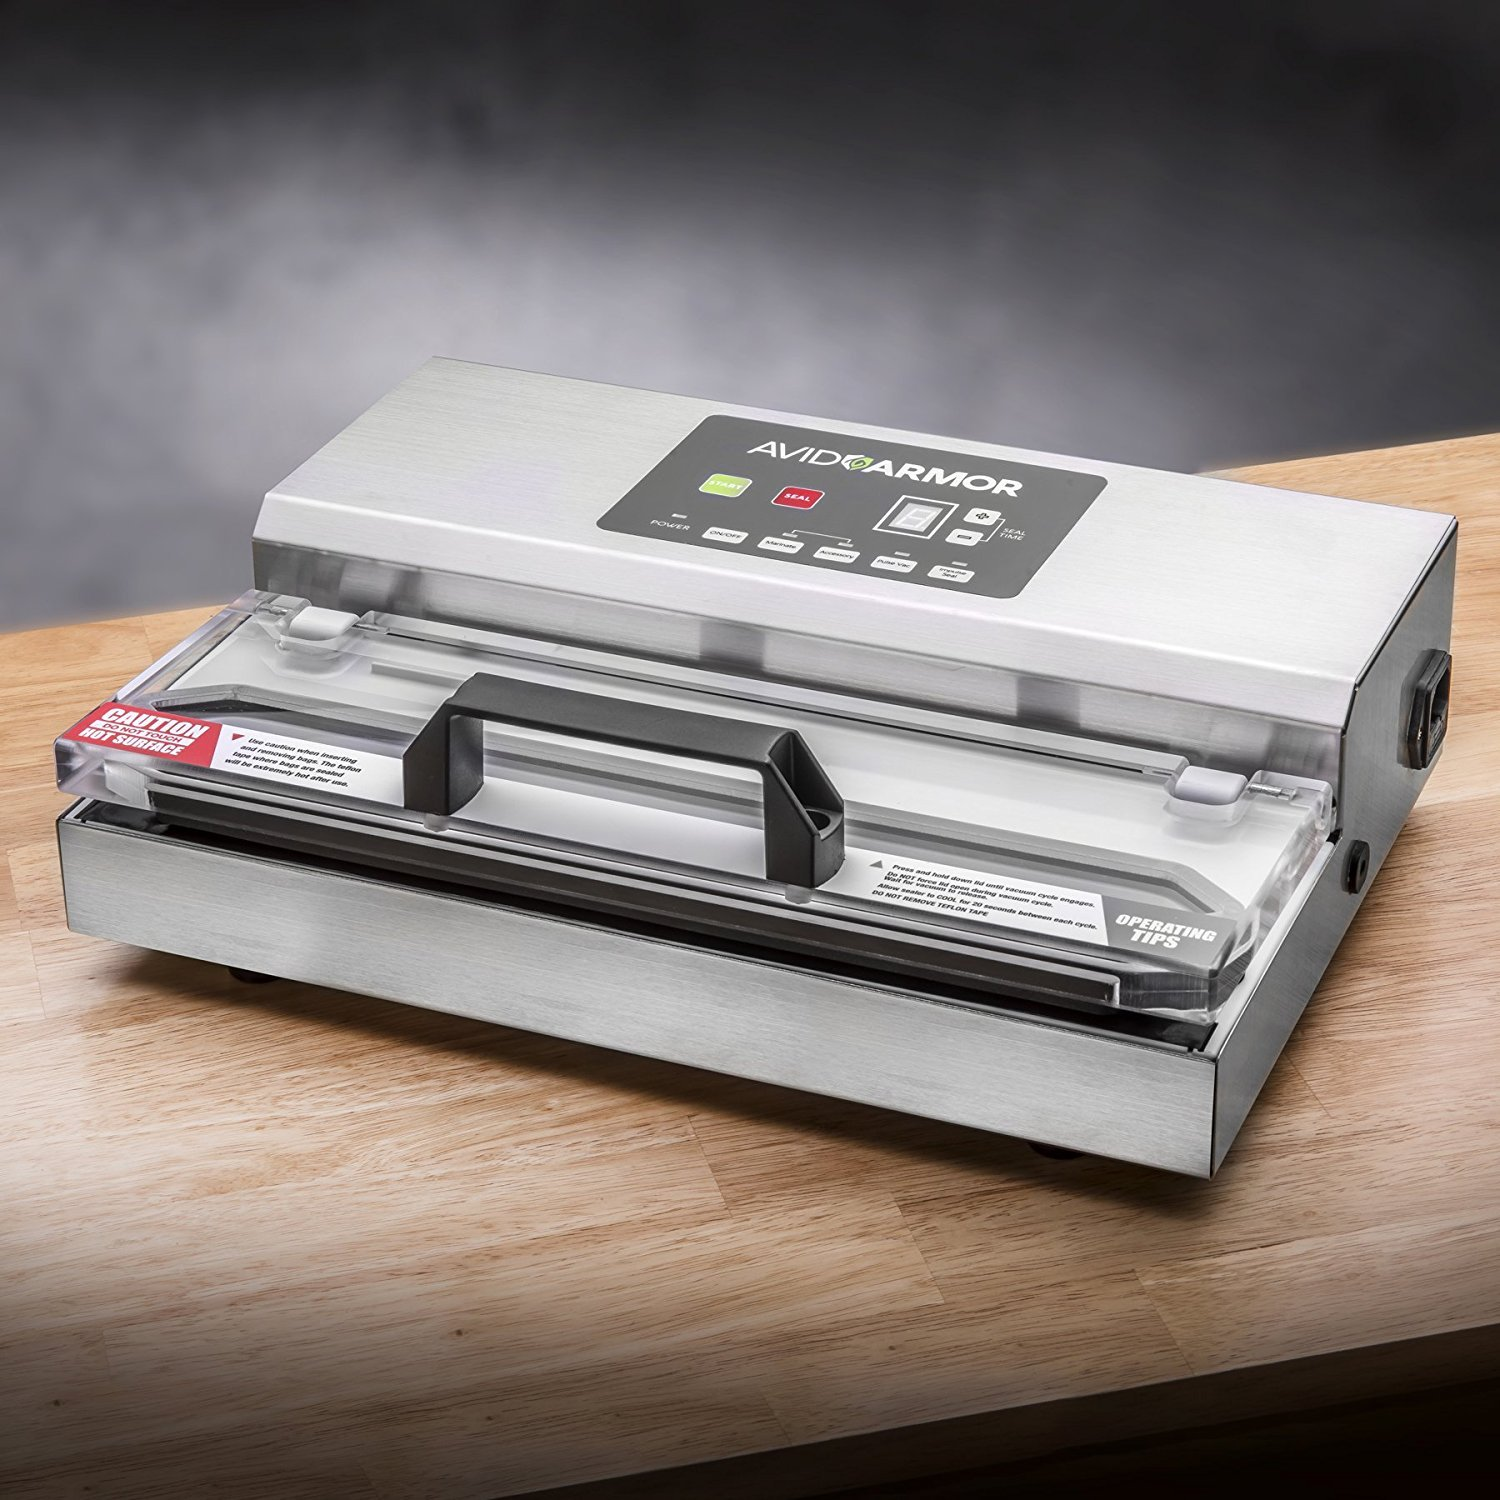 Avid Armor Vacuum Sealer Machine - A100 Stainless Construction, Clear Lid, Commercial Double Piston Pump Heavy Duty 12'' Wide Seal Bar Built in Cooling Fan Includes 30 Pre-cut Bags and Accessory Hose by Avid Armor (Image #2)